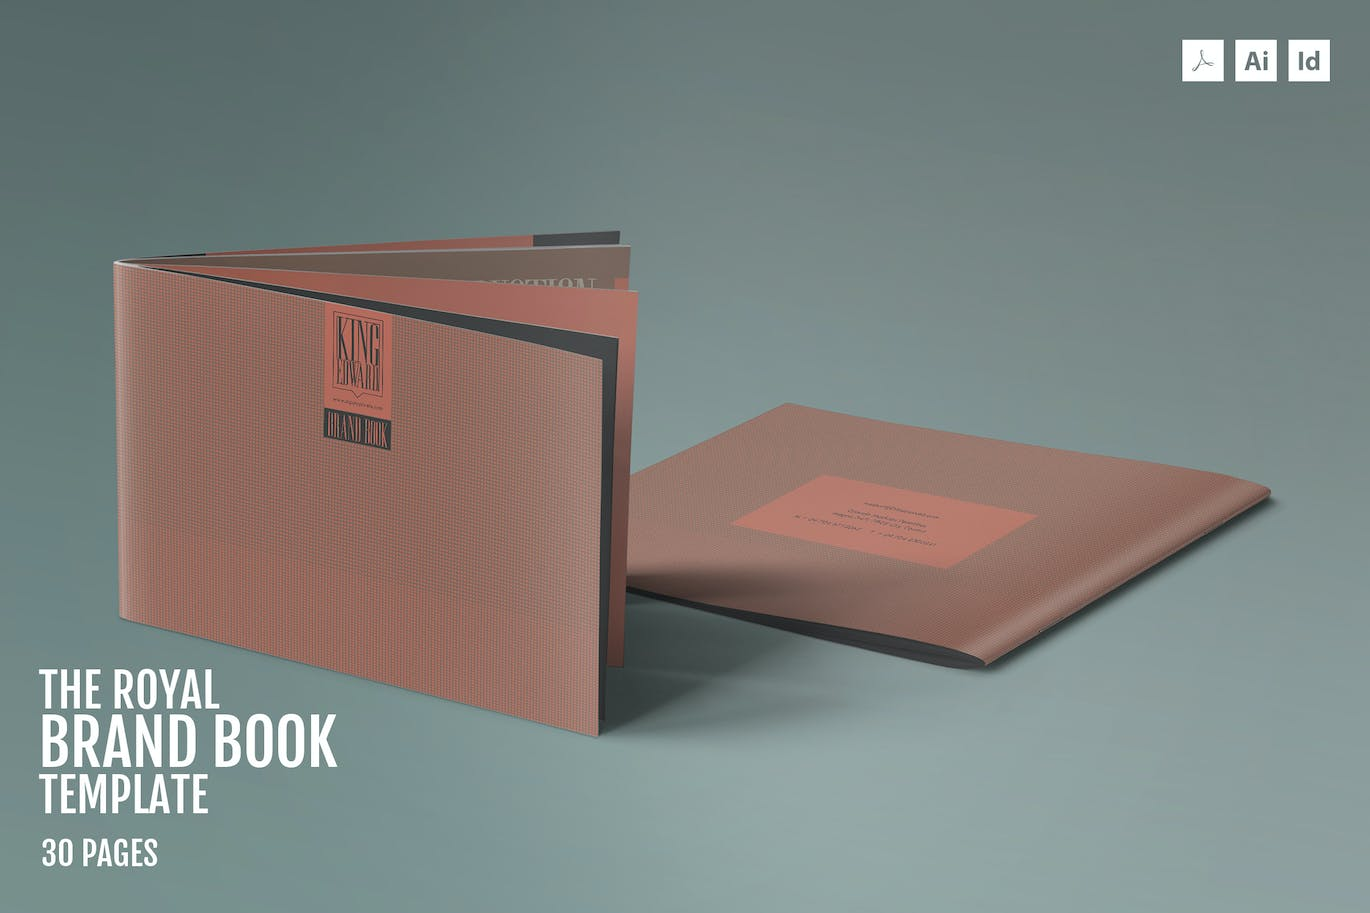 brandbook template 001 by id_vision_studio on envato elements